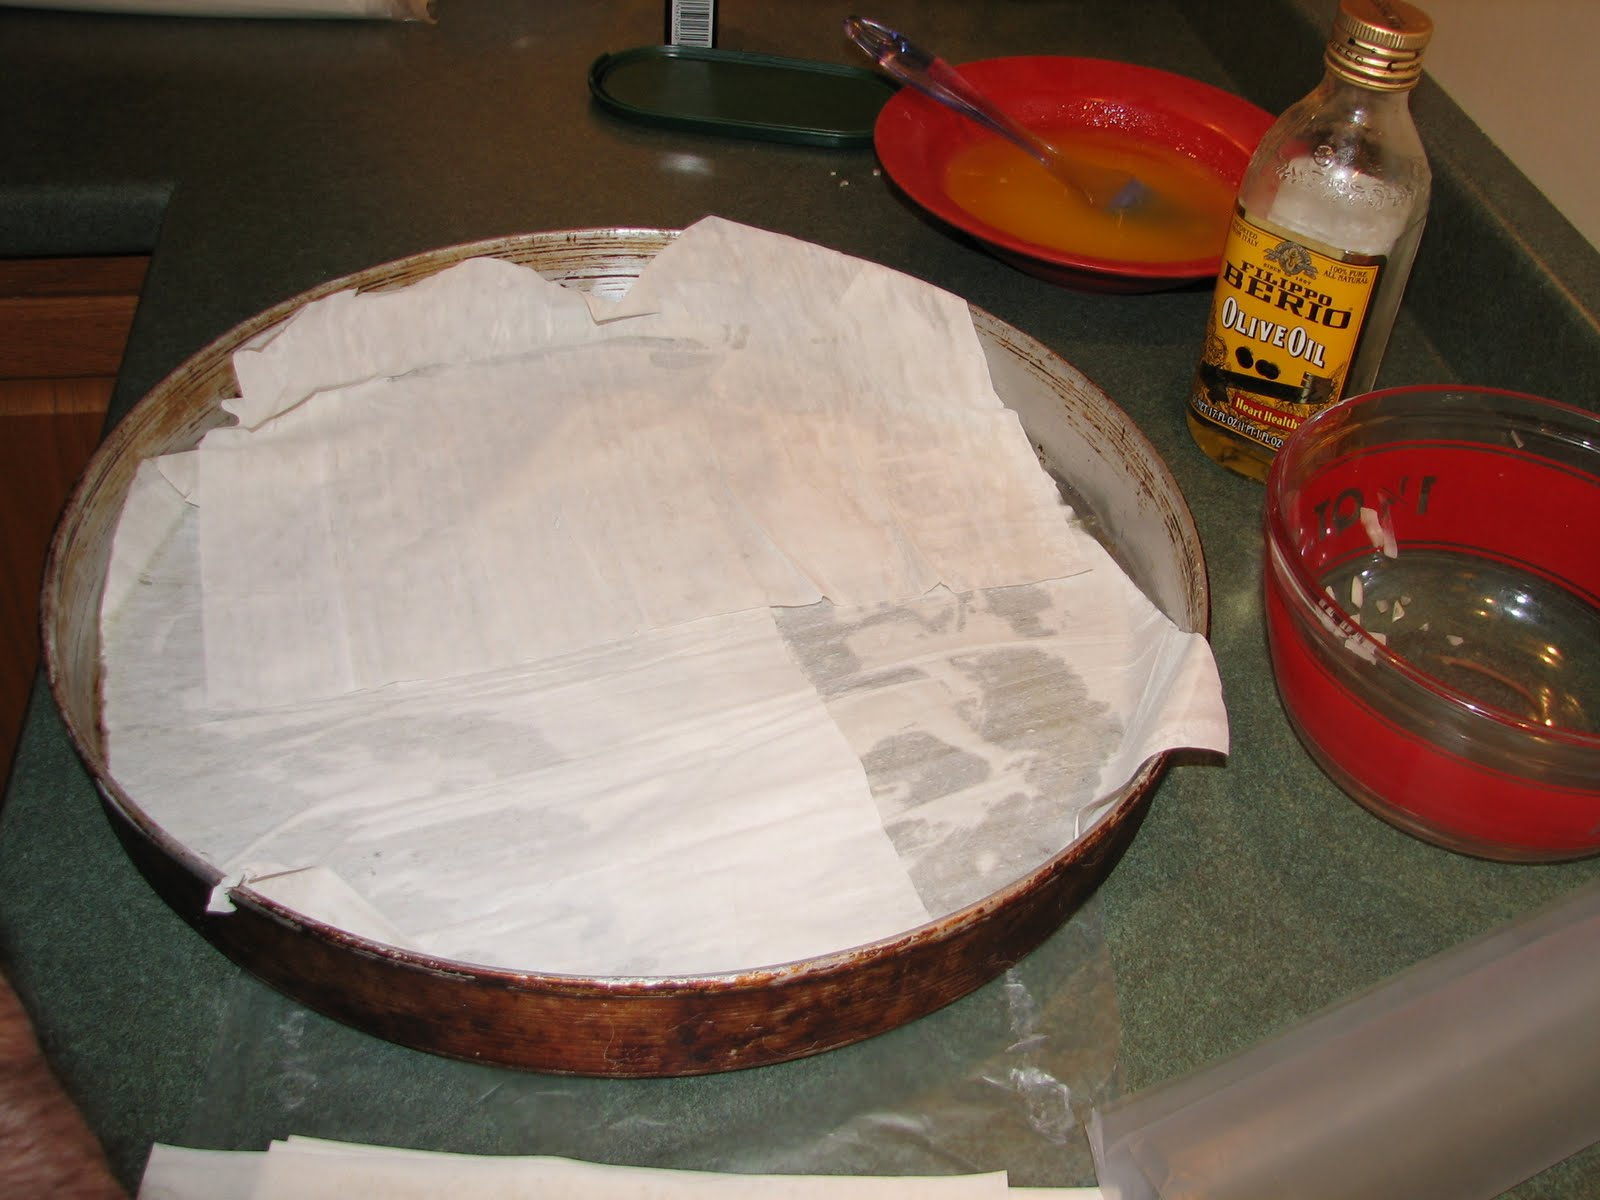 This is Bill's special pan for making a giant kotopita pie. You can buy one in the Immigrant Kitchens store [link to product page], or simply make more than one pie in smaller baking dishes that you already have. Use butter or olive oil to butter the pan before adding those first sheets of phyllo.